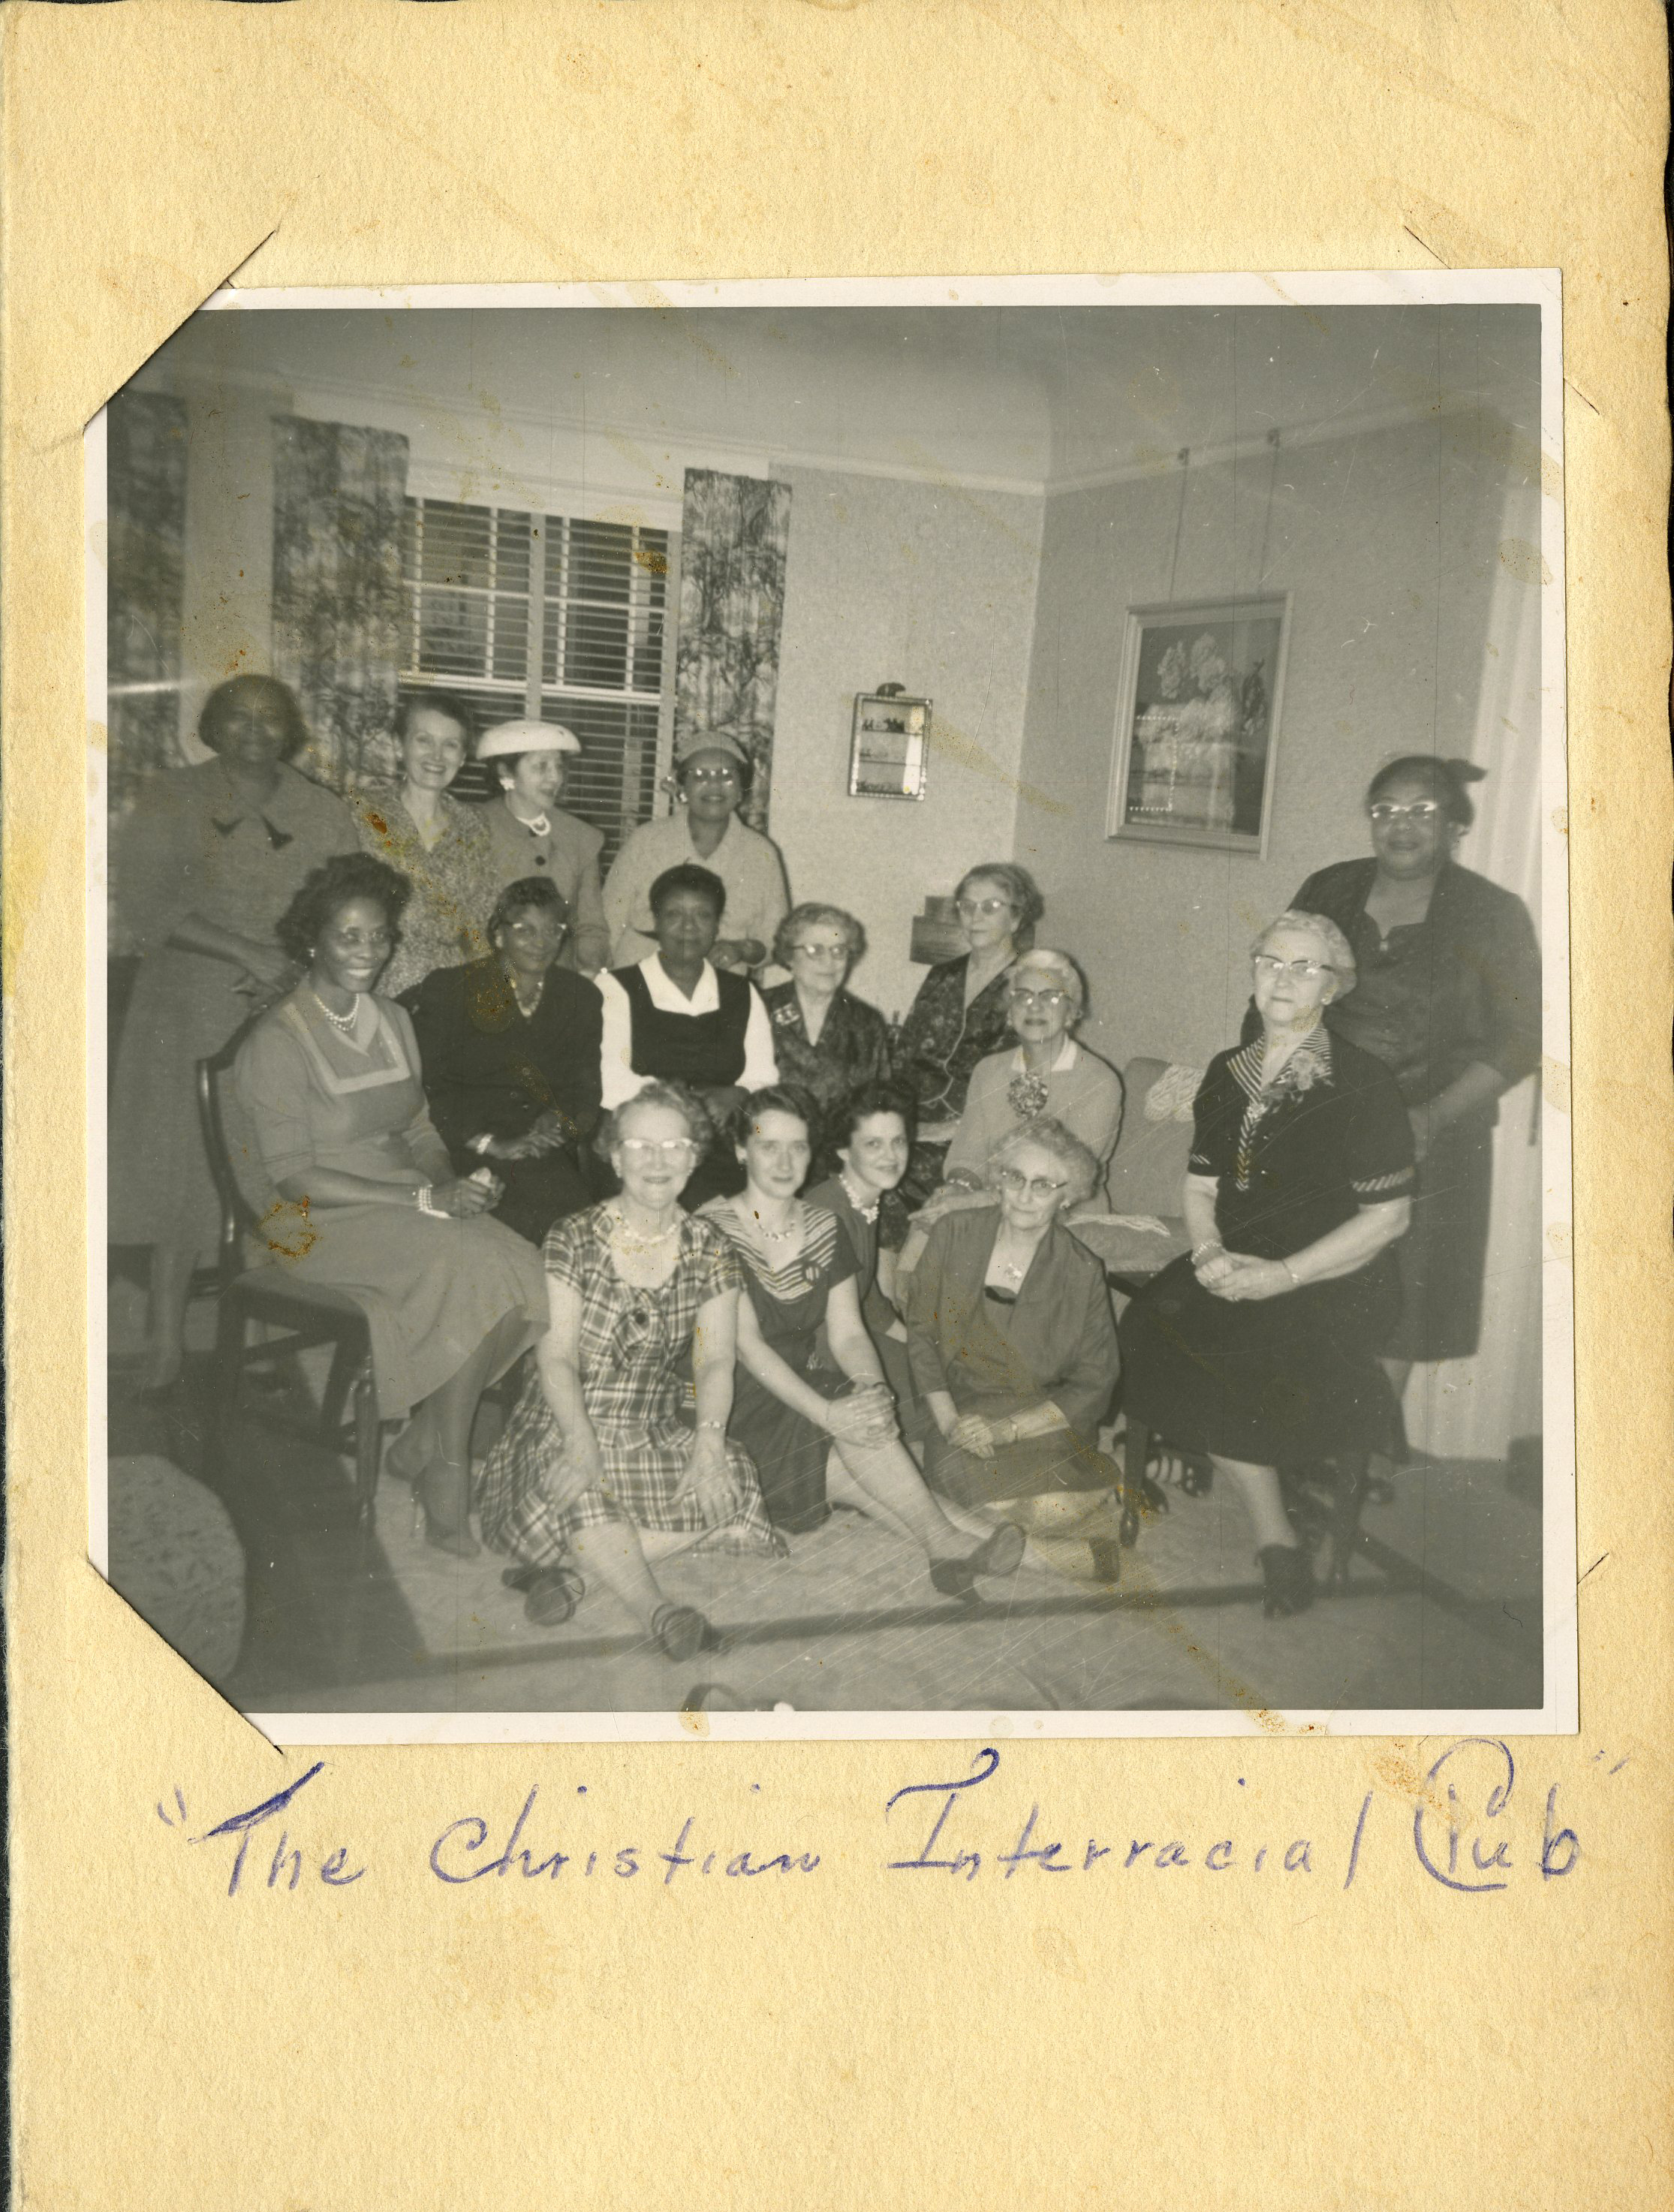 Members of the Vancouver Ave. First Baptist take part in the Christian Interracial Club in Portland, 1962.